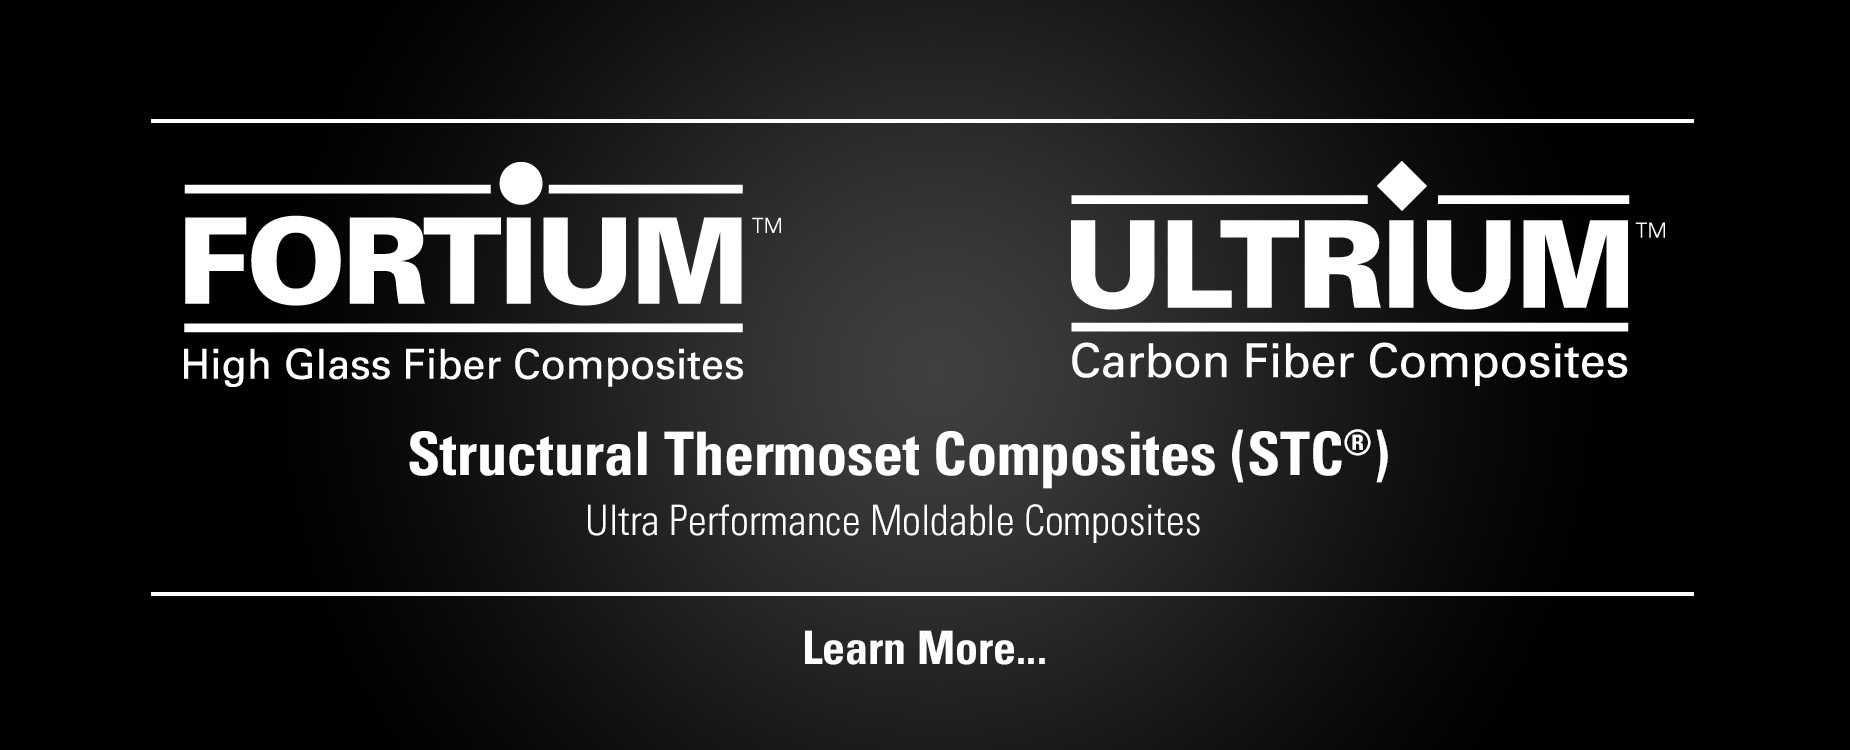 Fortium & Ultrium Structural Thermoset Composites